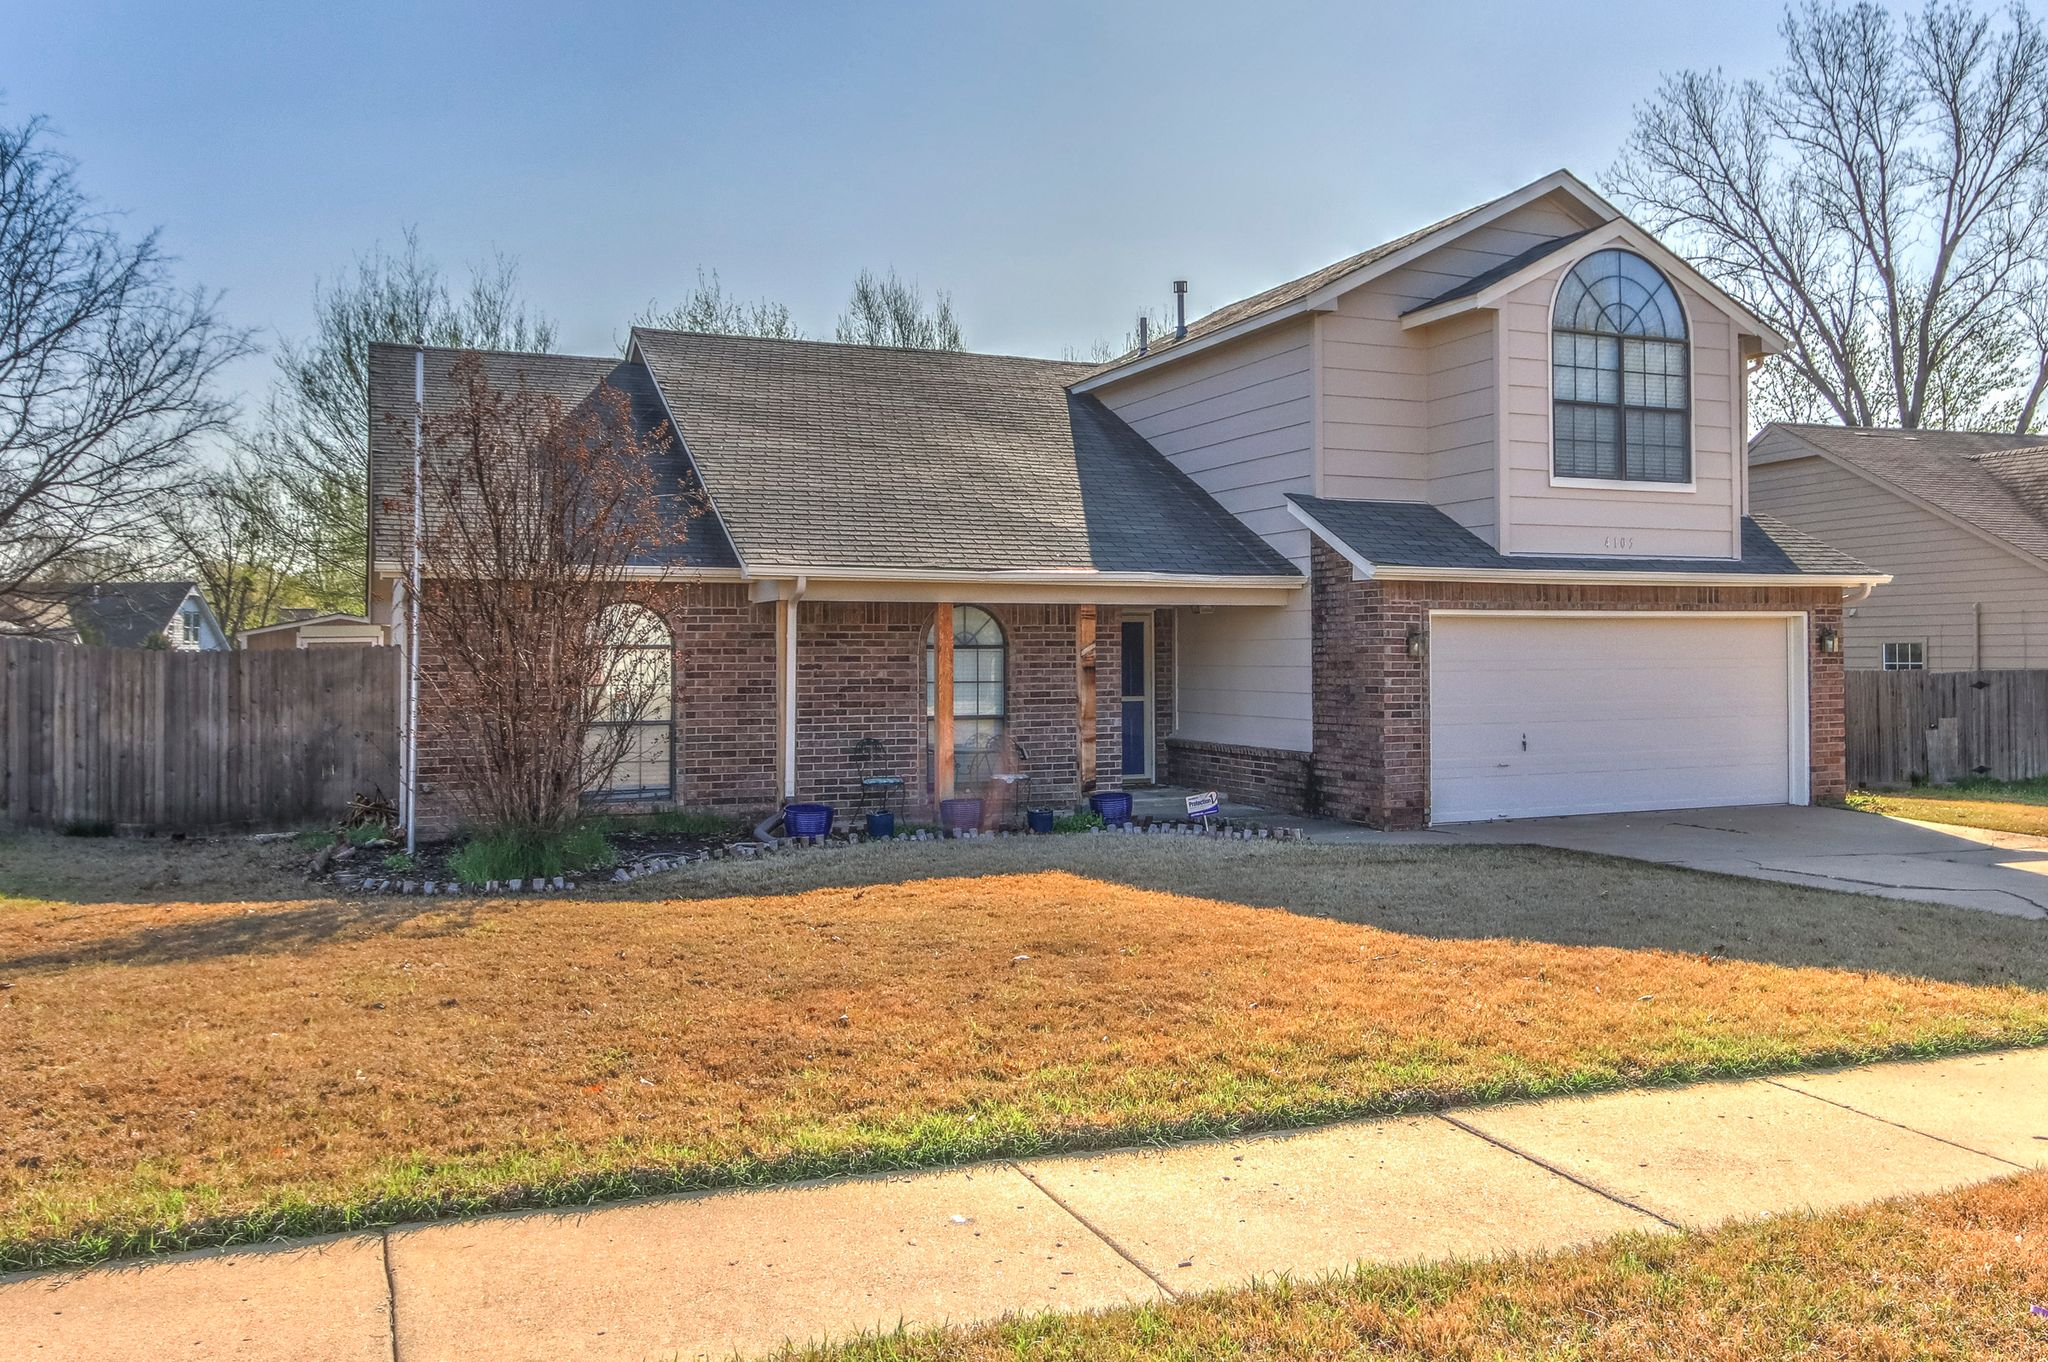 Right Here is the Completely New Image Of Patio Homes for Sale Broken Arrow Ok